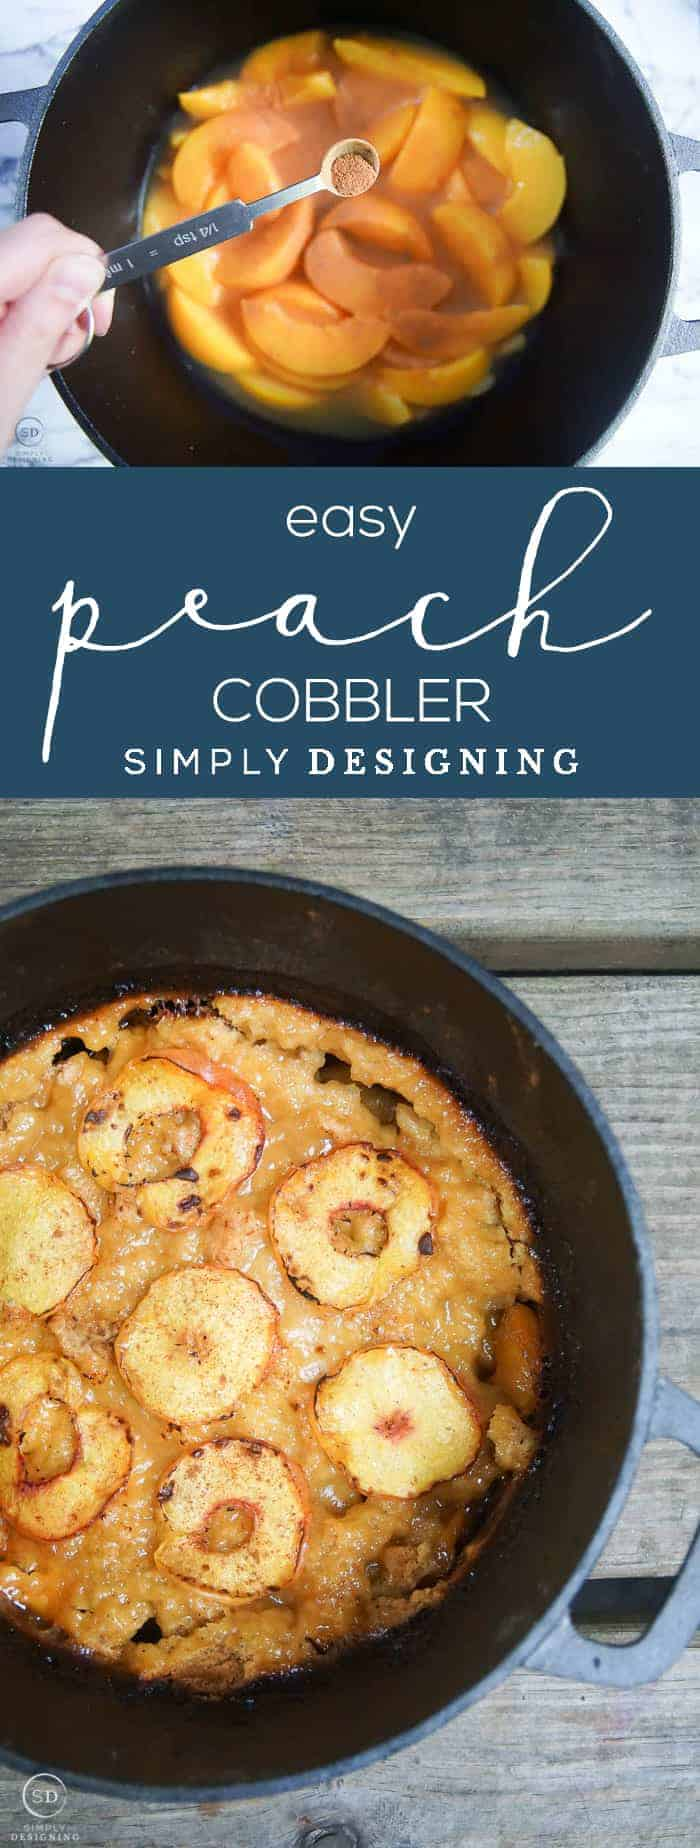 Easy Peach Cobbler - This easy peach cobbler recipe only requires 5 ingredients to make most of which you probably have on hand - It is delicious served warm with ice cream